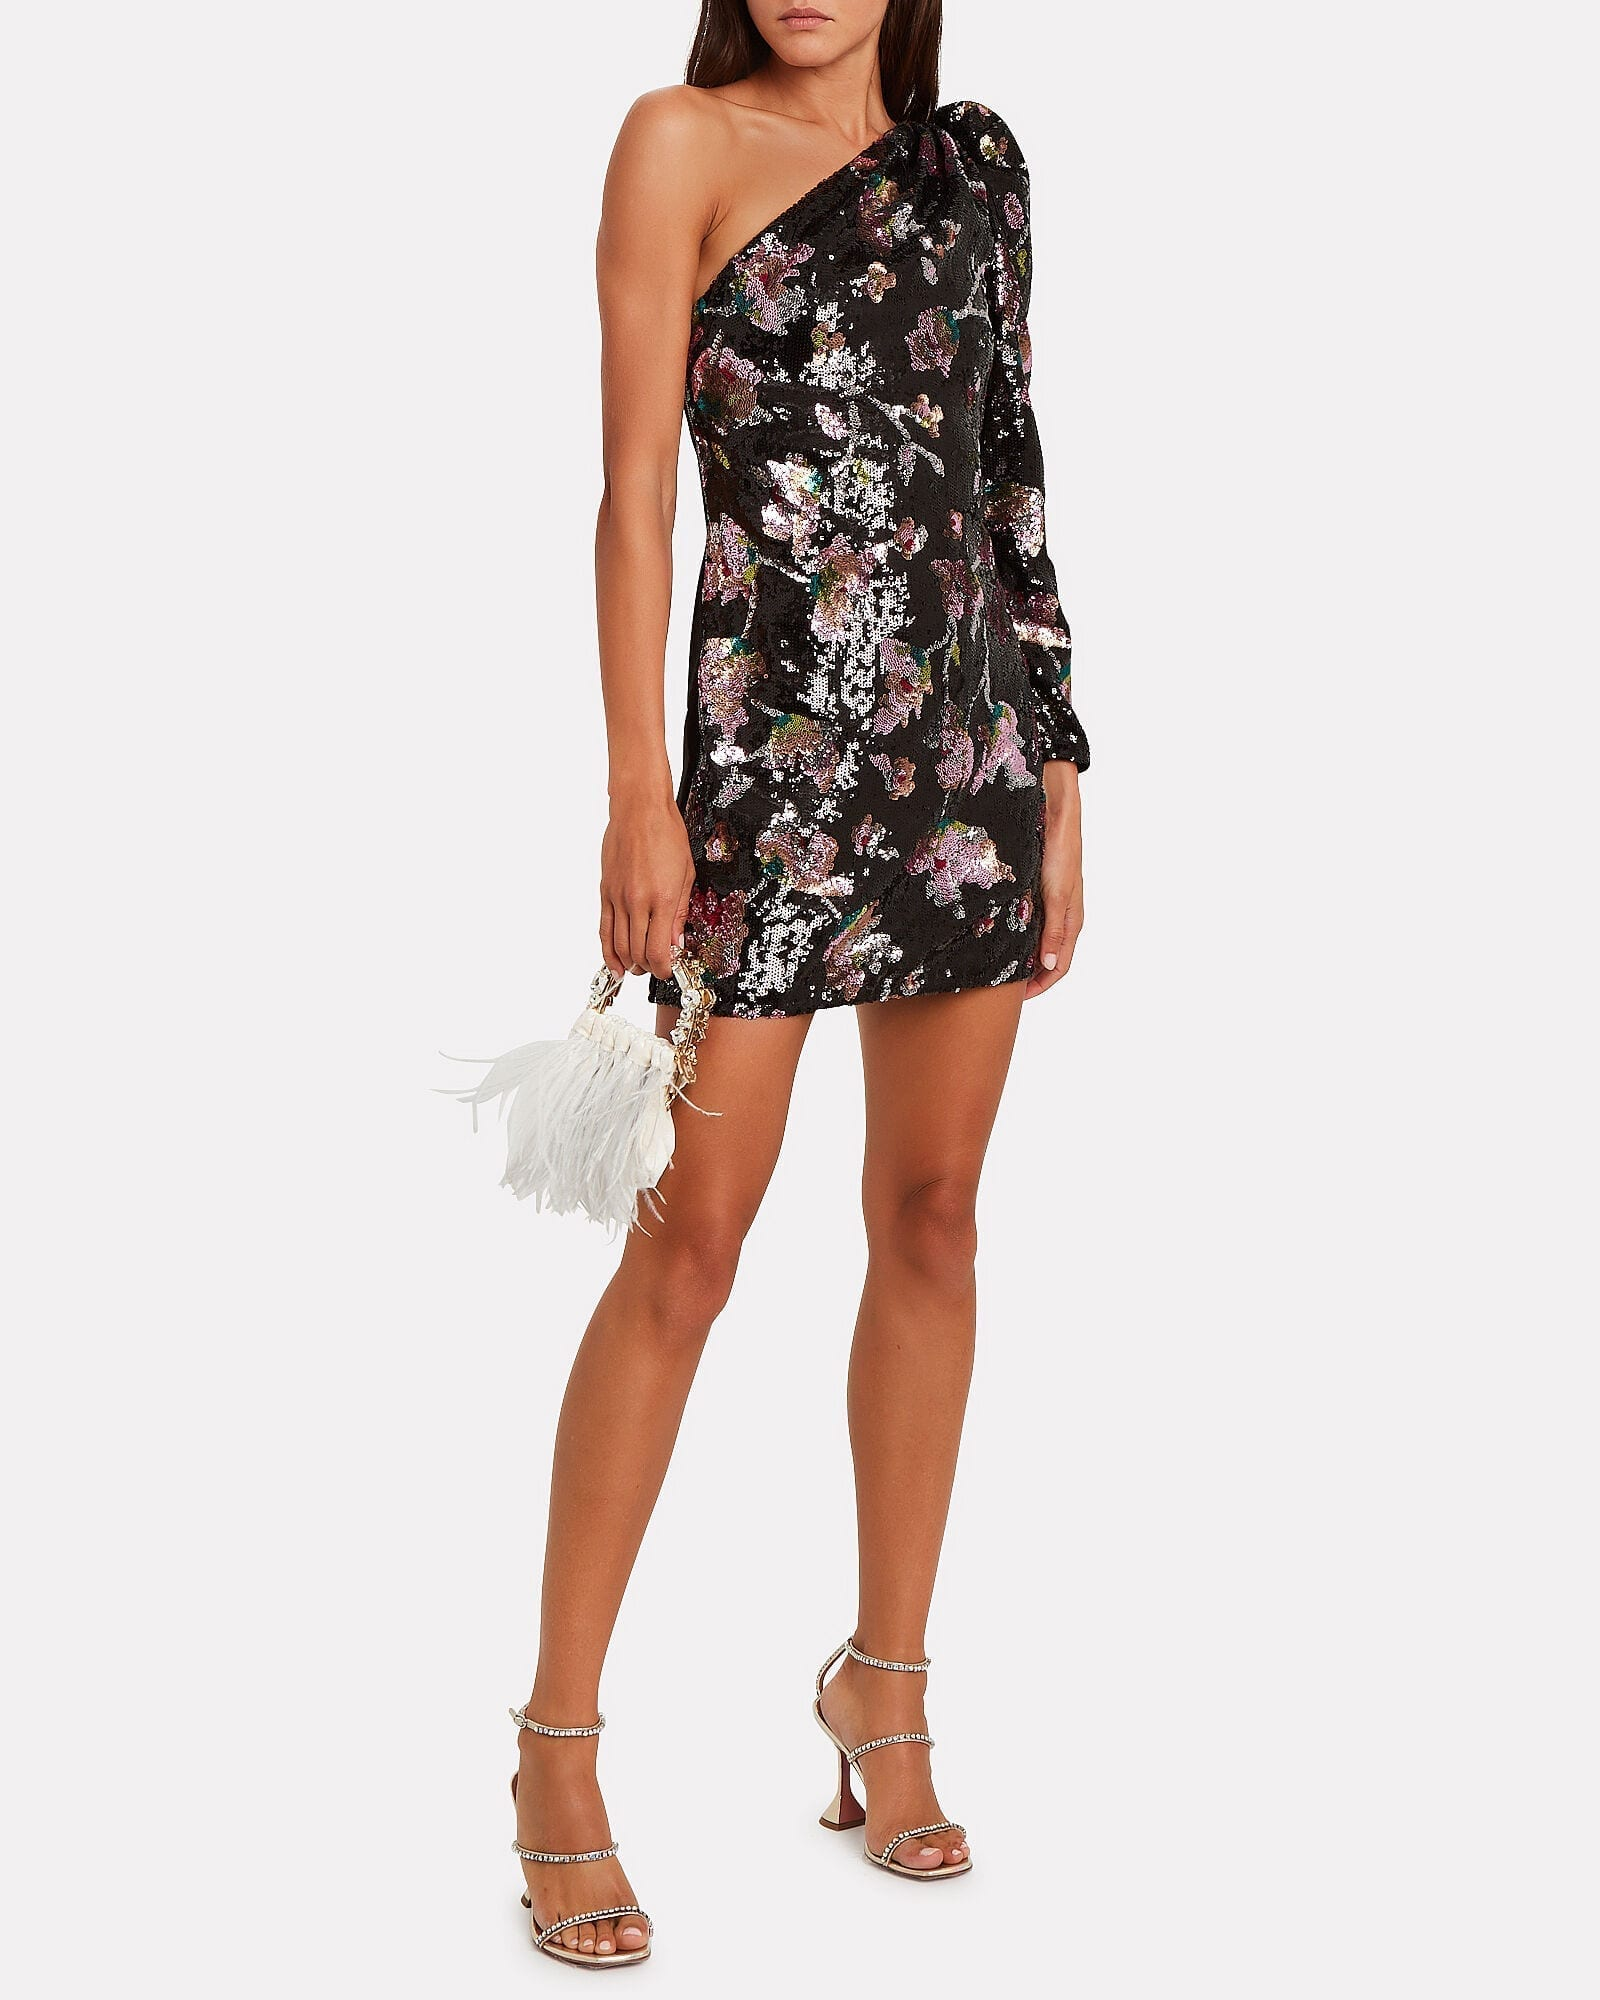 SELF-PORTRAIT Midnight Bloom Sequin One-Shoulder Dress